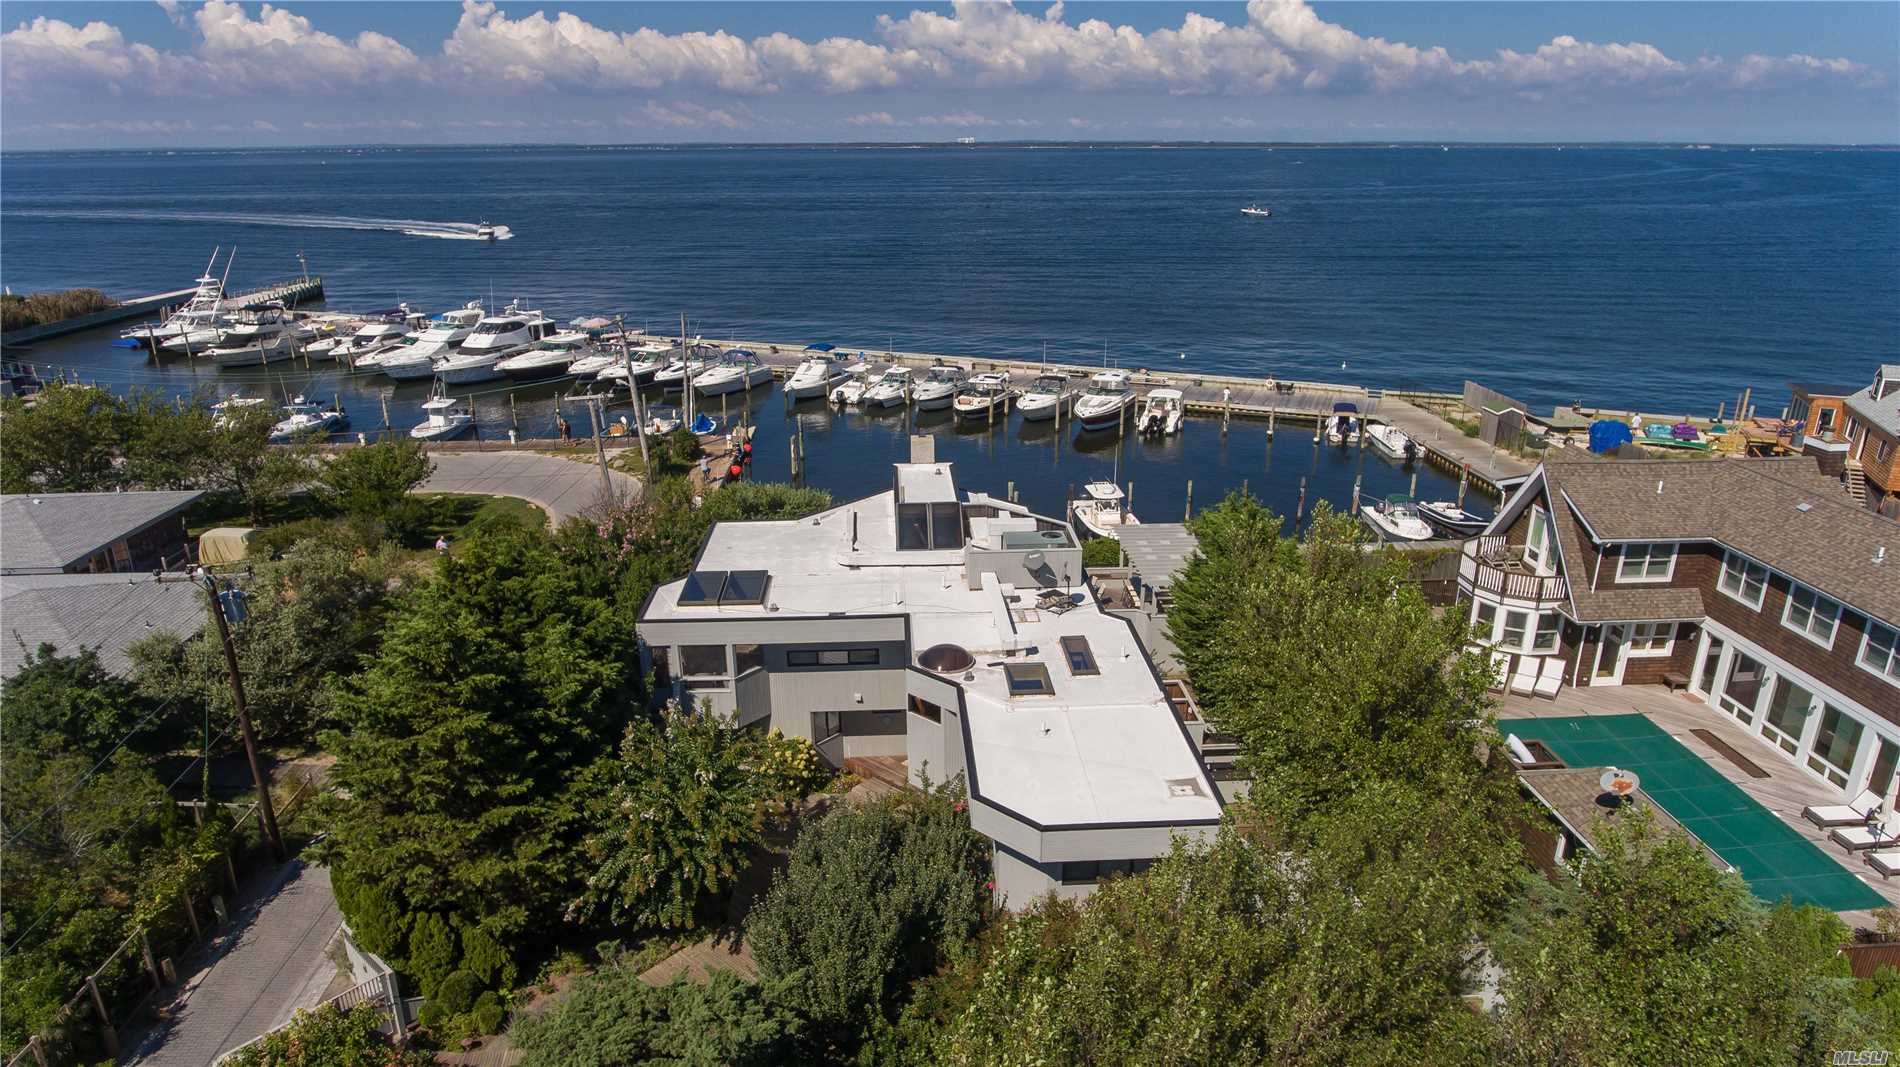 24 Fairway - Seaview, New York